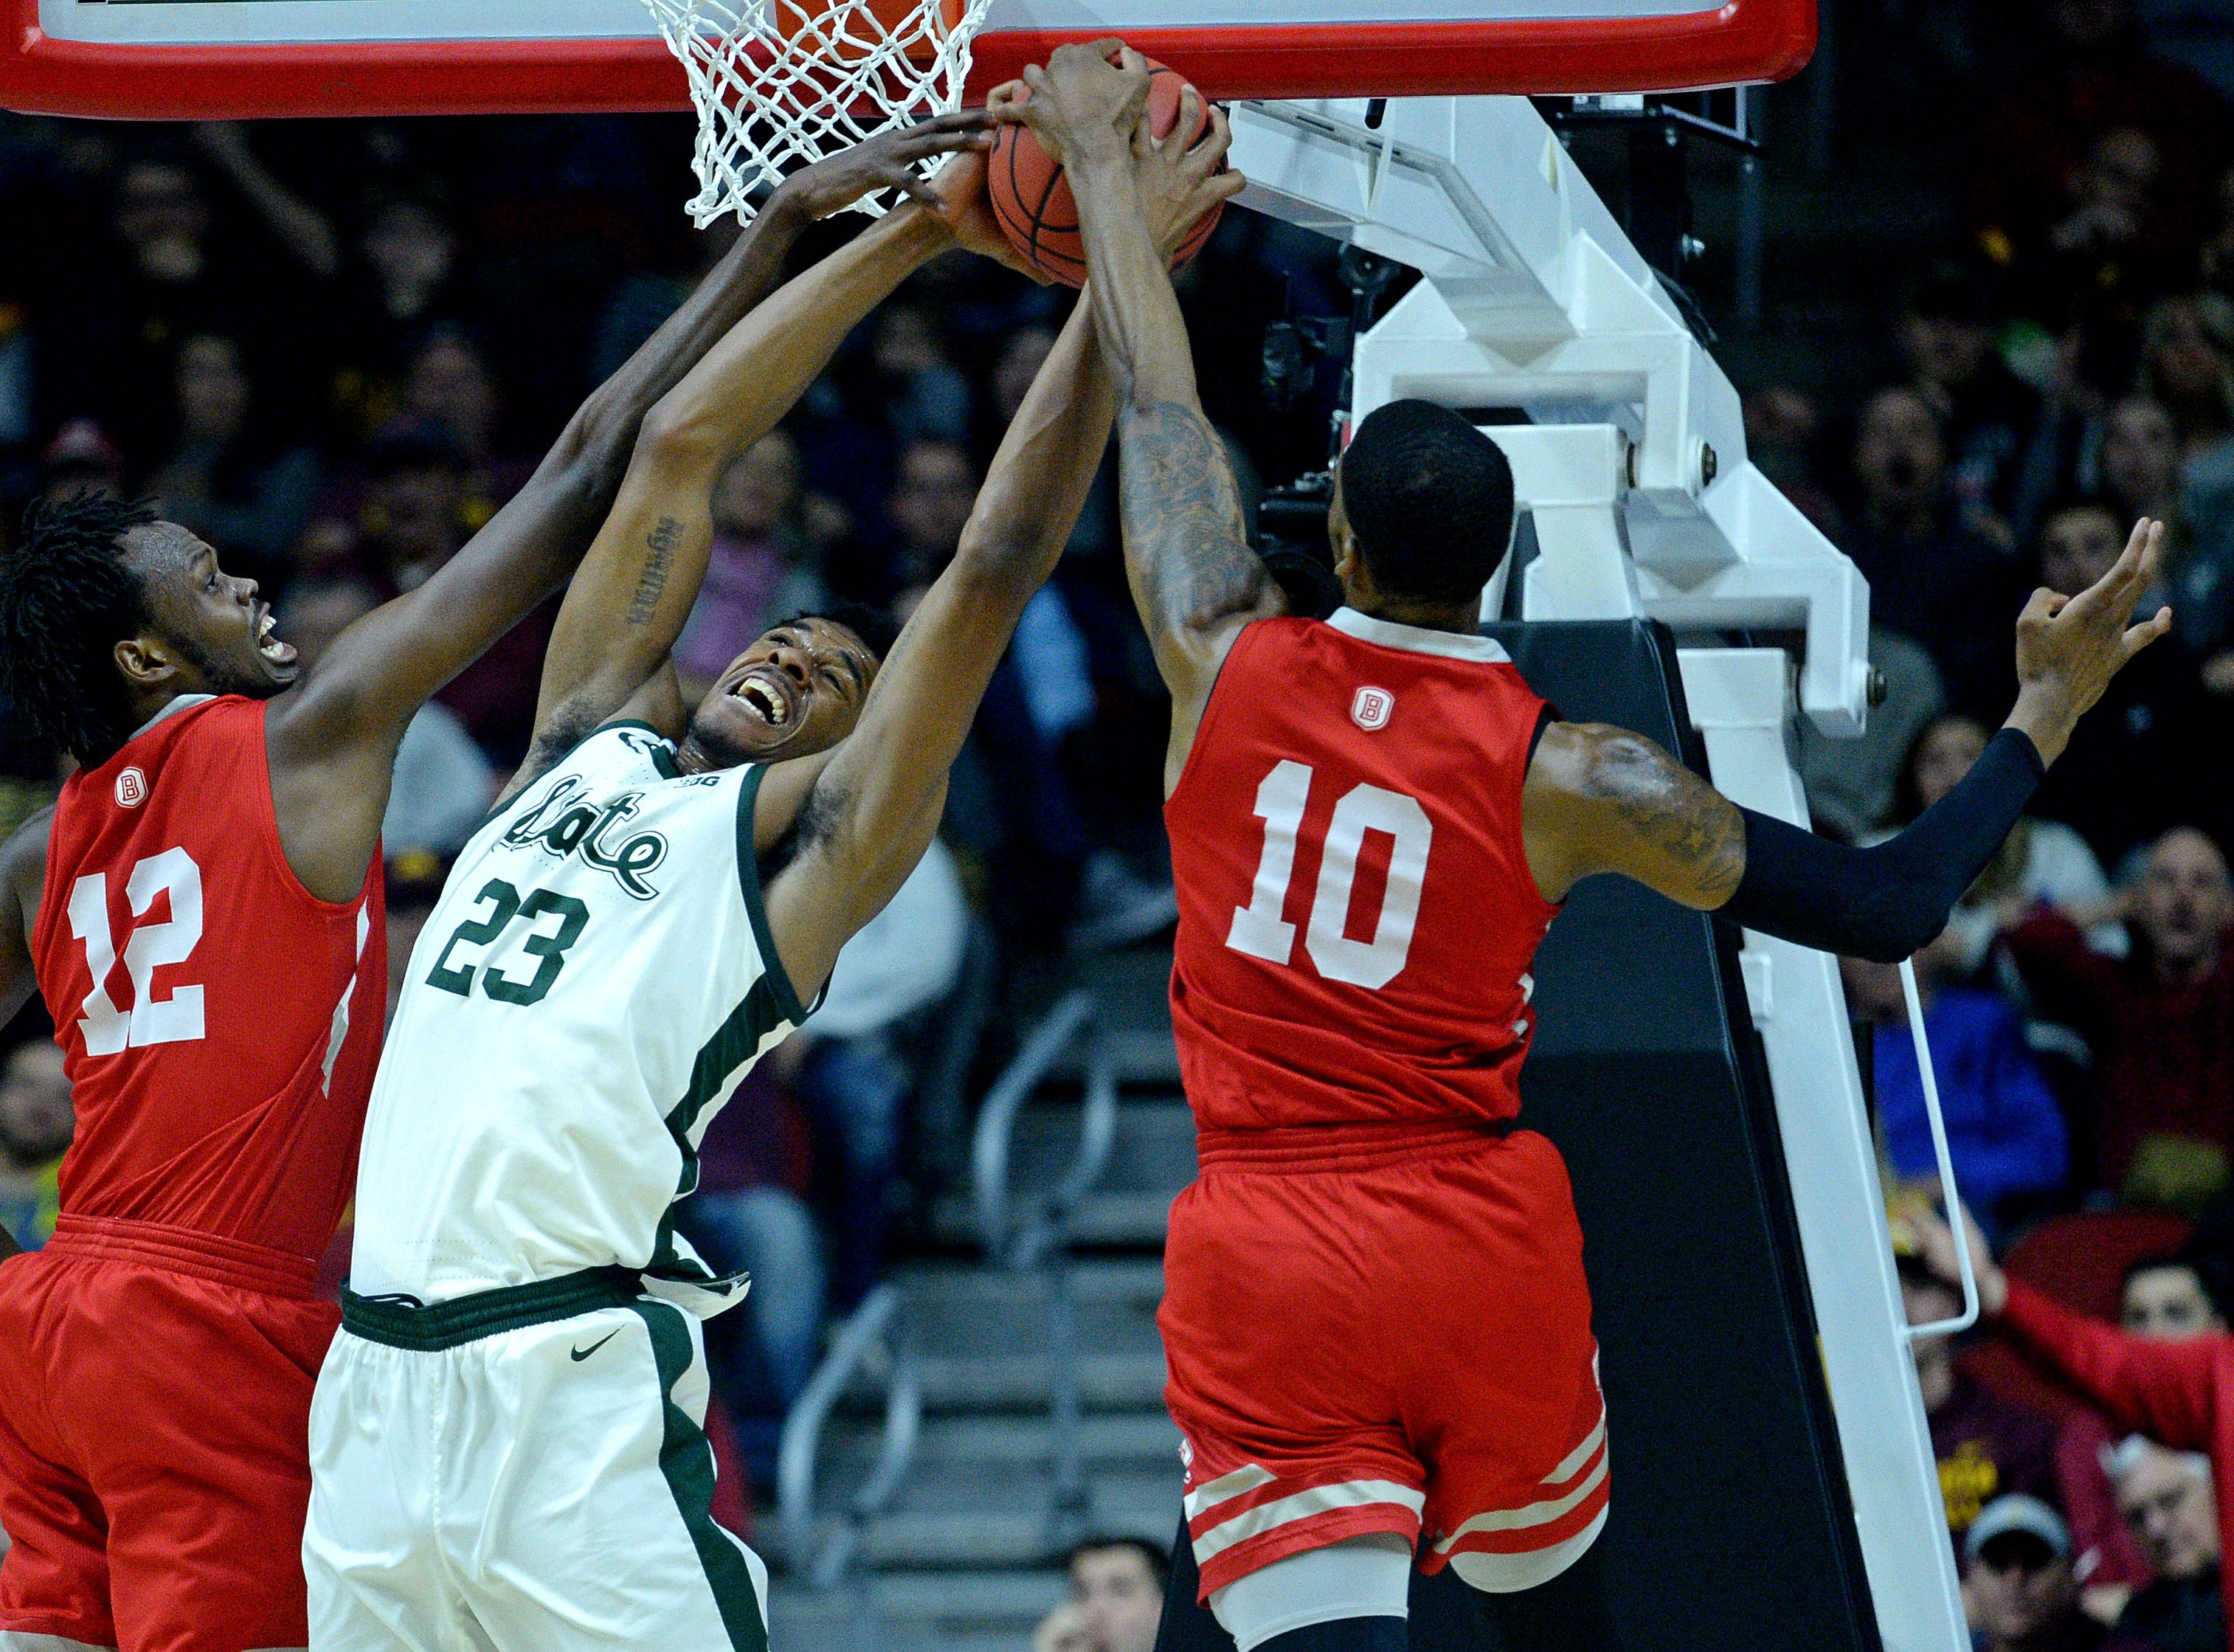 Bradley Braves center Koch Bar (12) and forward Elijah Childs (10) go for a rebound against Michigan State Spartans forward Xavier Tillman (23) during the first half in the first round of the 2019 NCAA Tournament at Wells Fargo Arena.